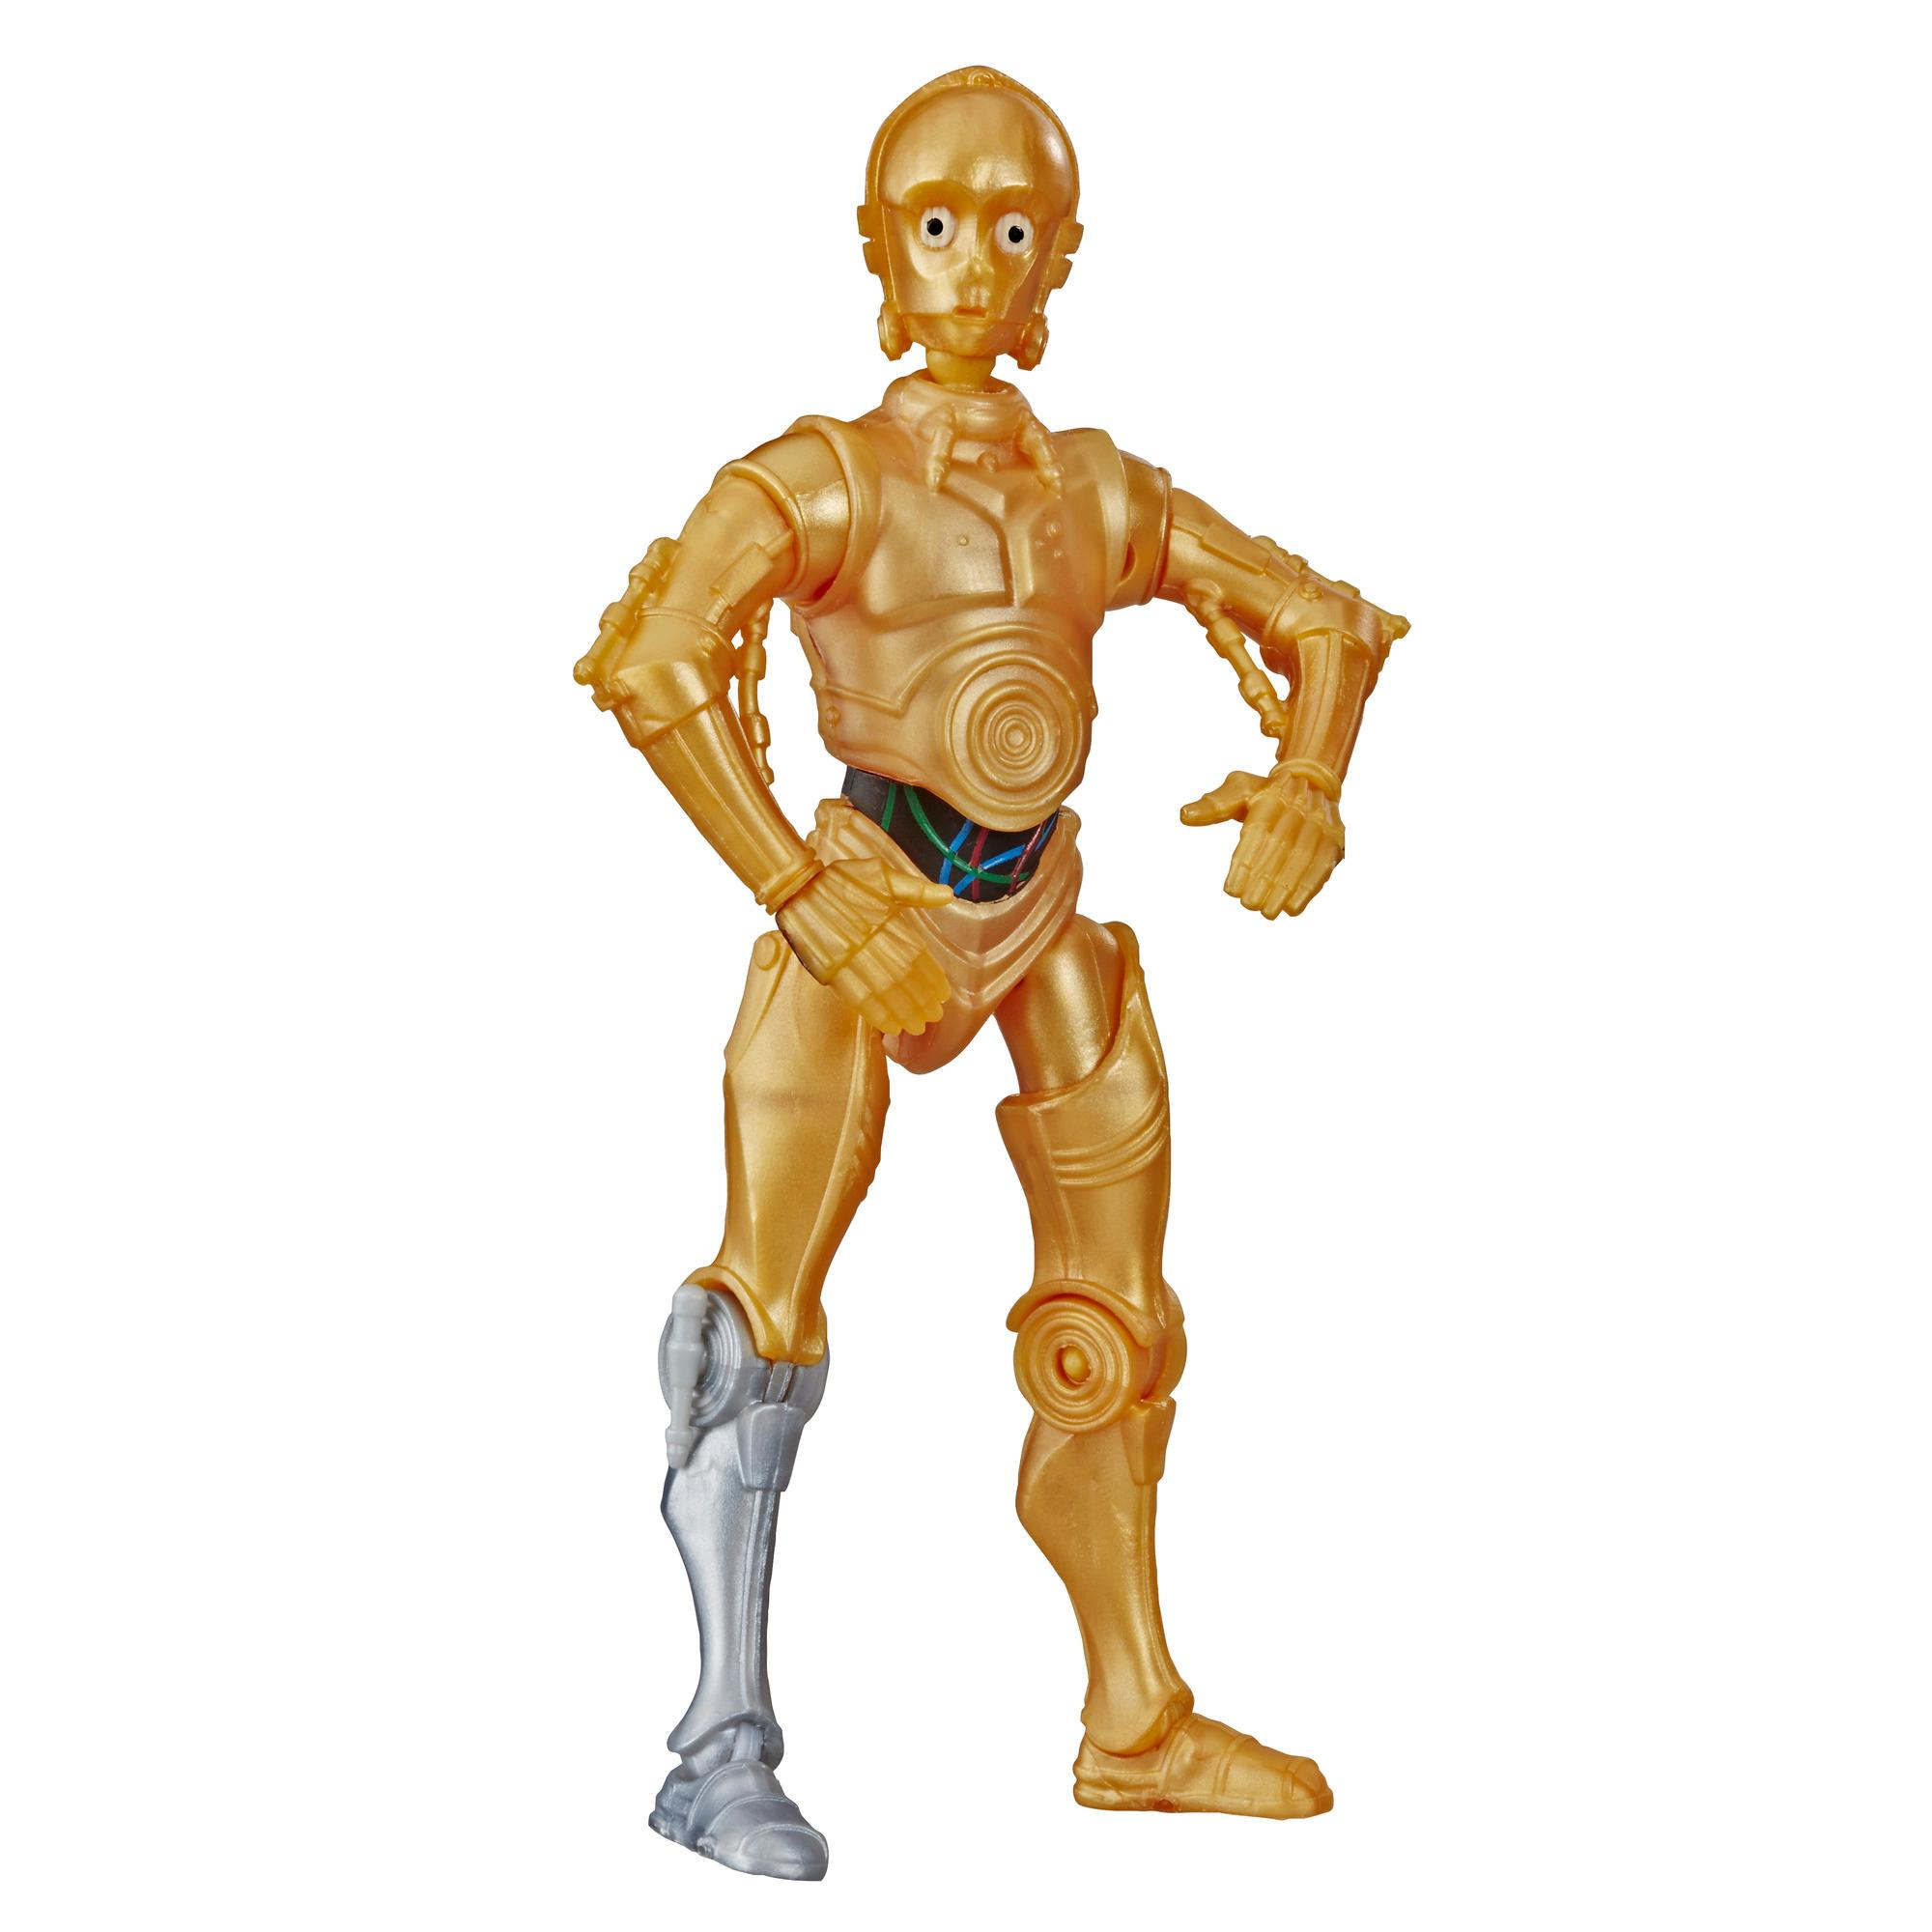 Star Wars Galaxy of Adventures C-3PO Toy Action Figure